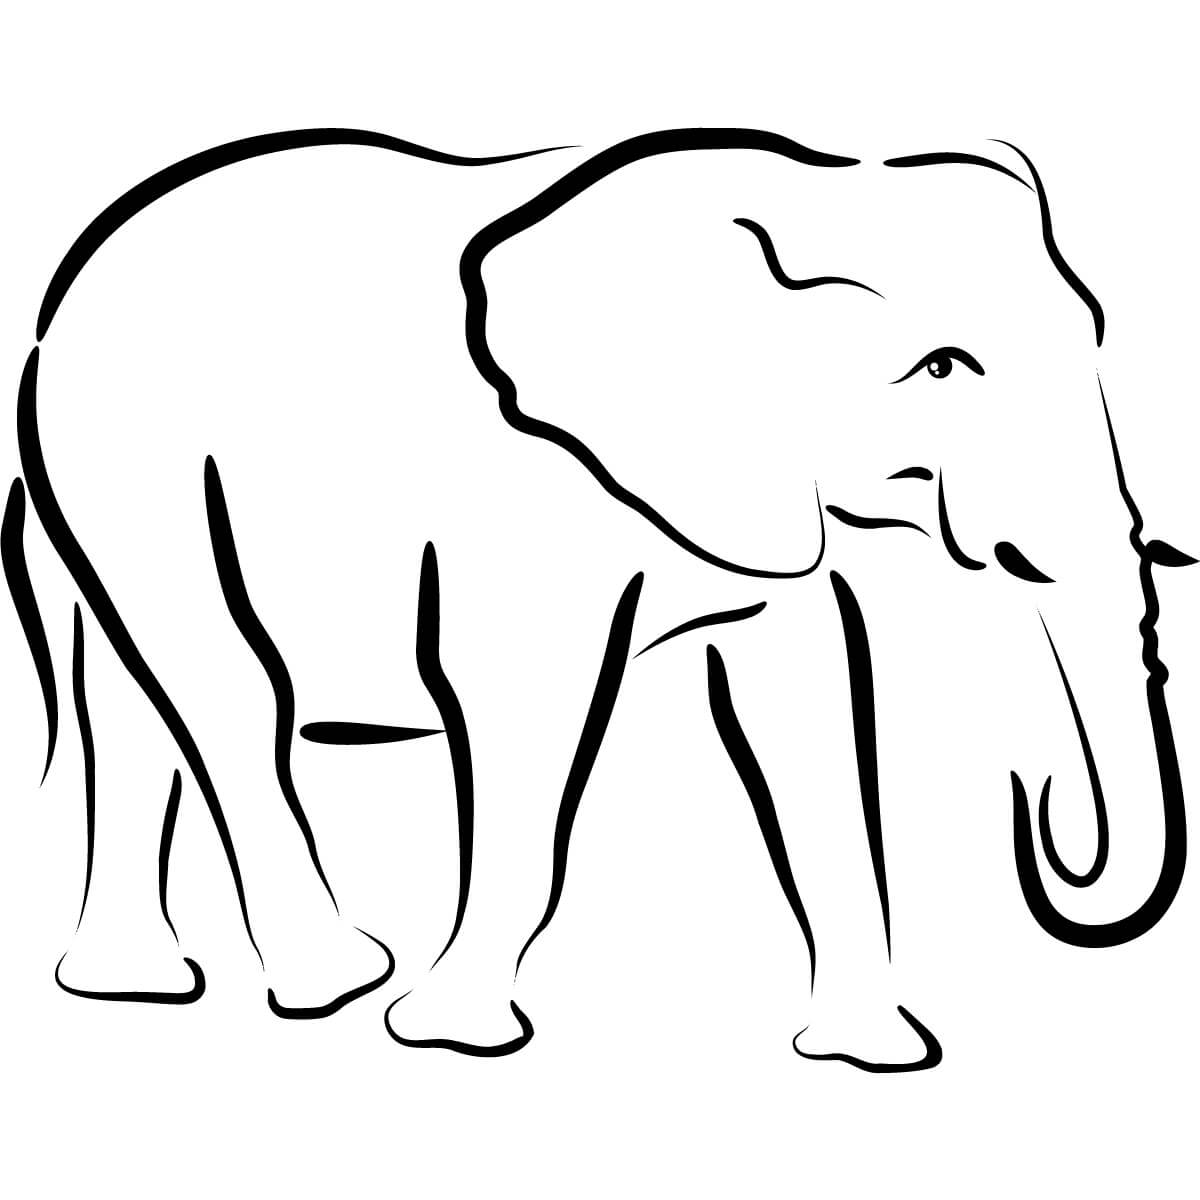 Free Simple Elephant Outline, Download Free Clip Art, Free with Blank Elephant Template